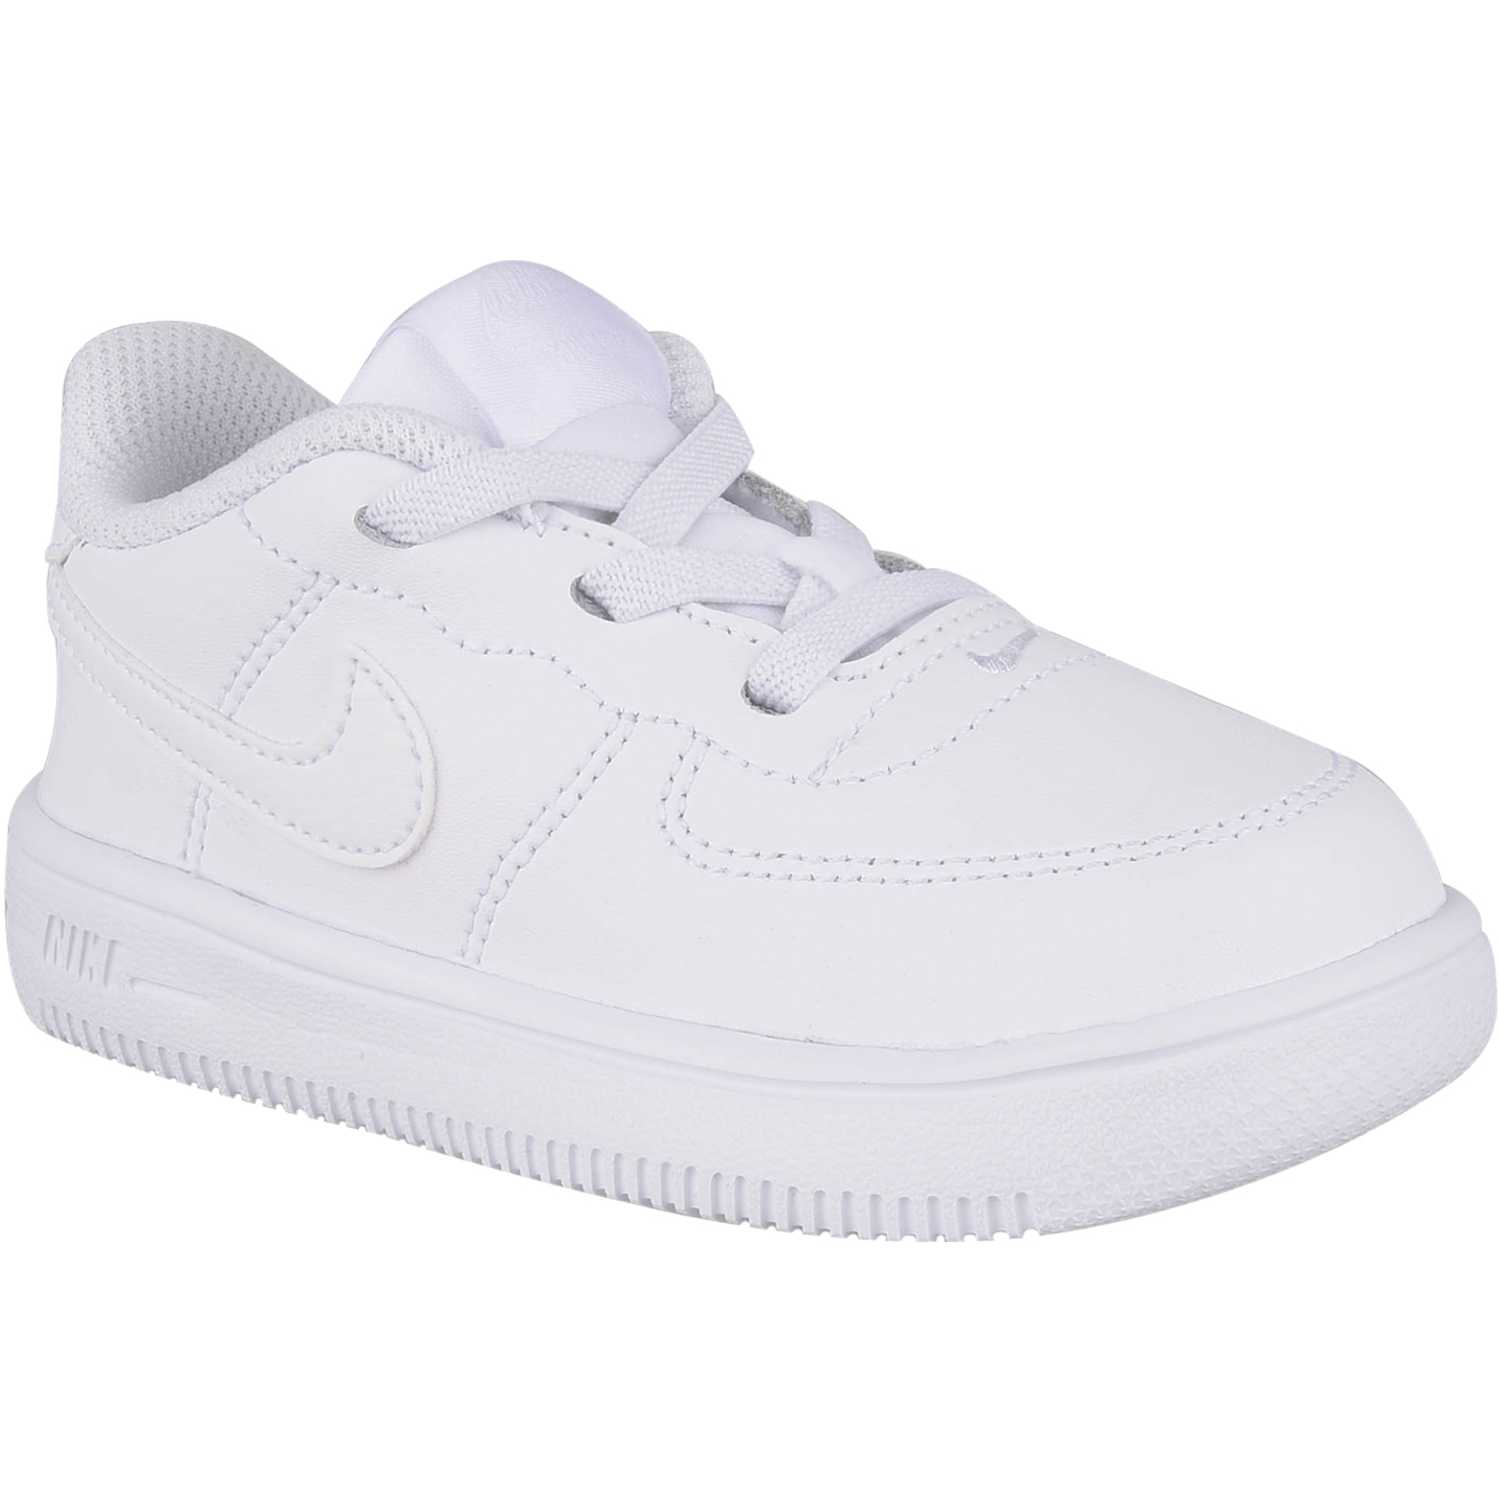 Zapatilla de Niño Nike Blanco/blanco force 1 18 bt